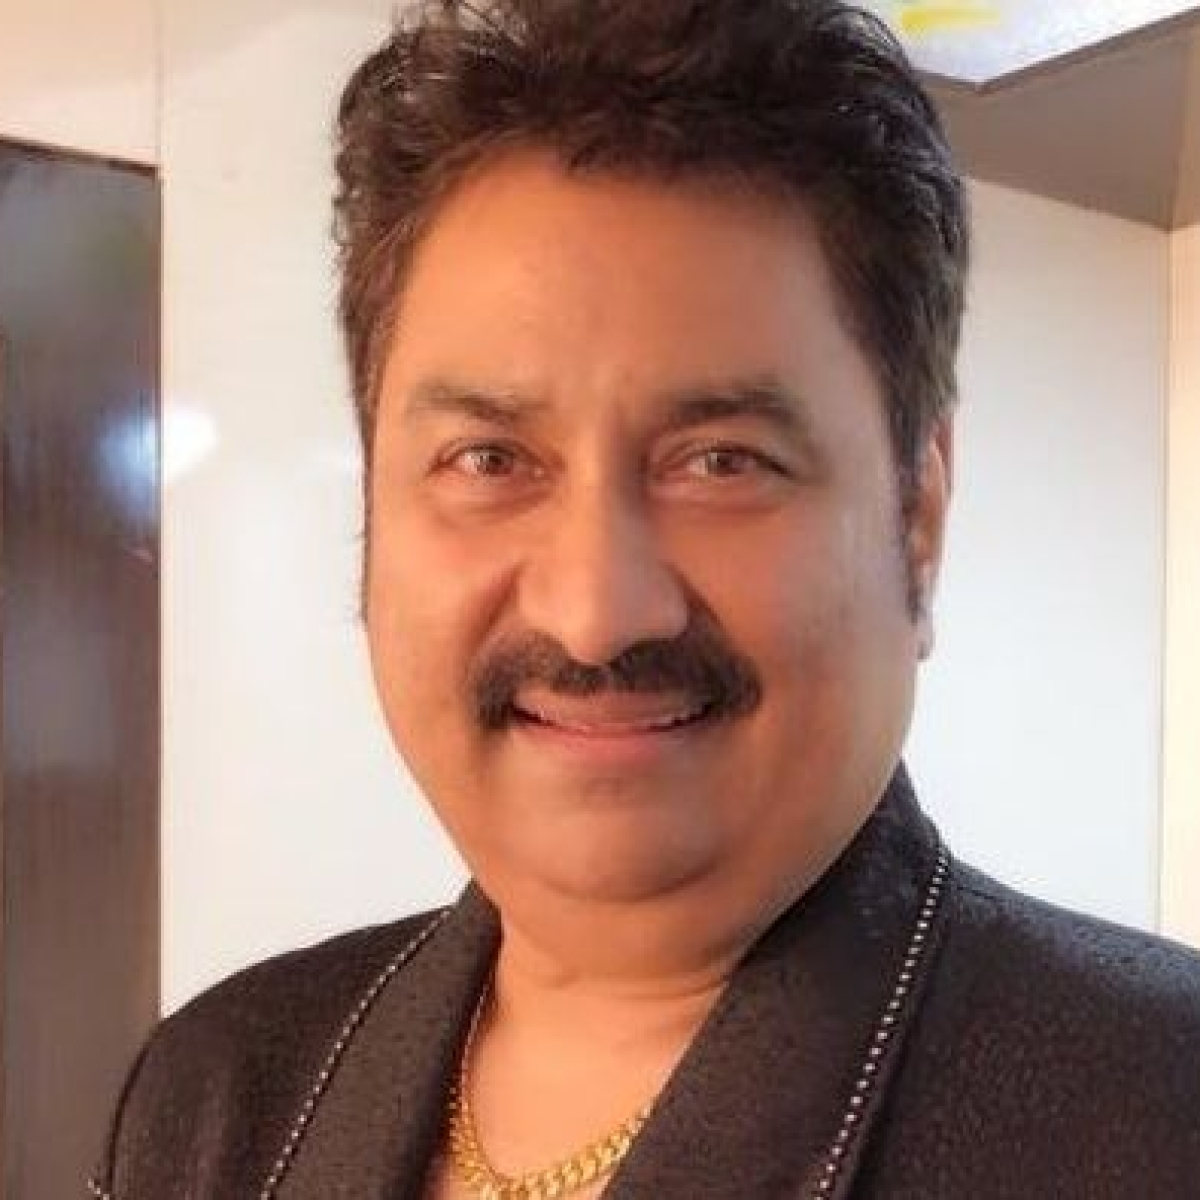 'Unfair to compare newcomers to legendary singers like Kishore Kumar': Kumar Sanu on 'Indian Idol 12' controversy